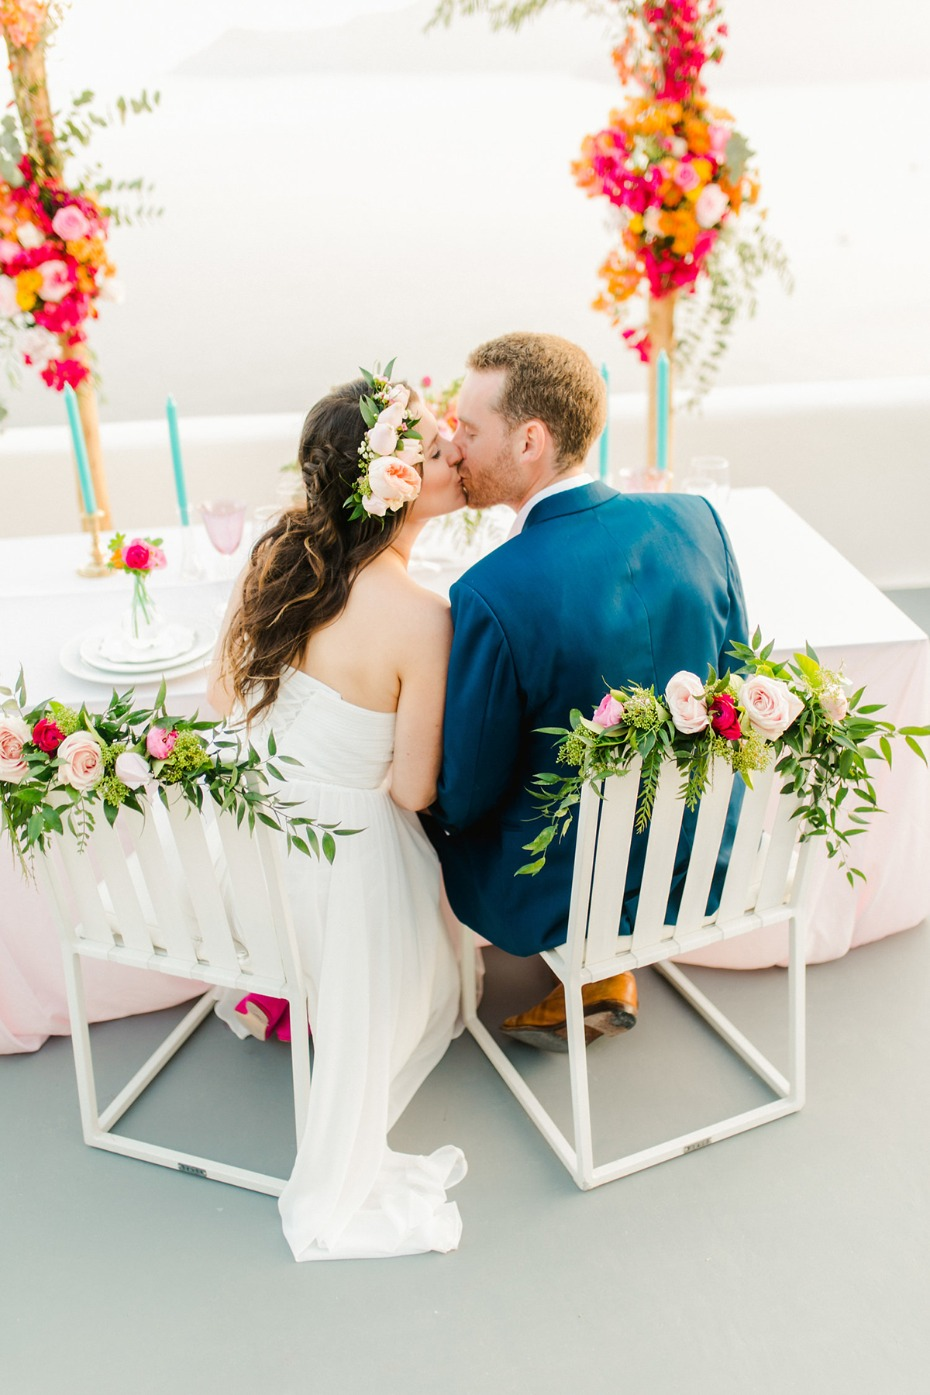 wedding kiss and flower seat accents